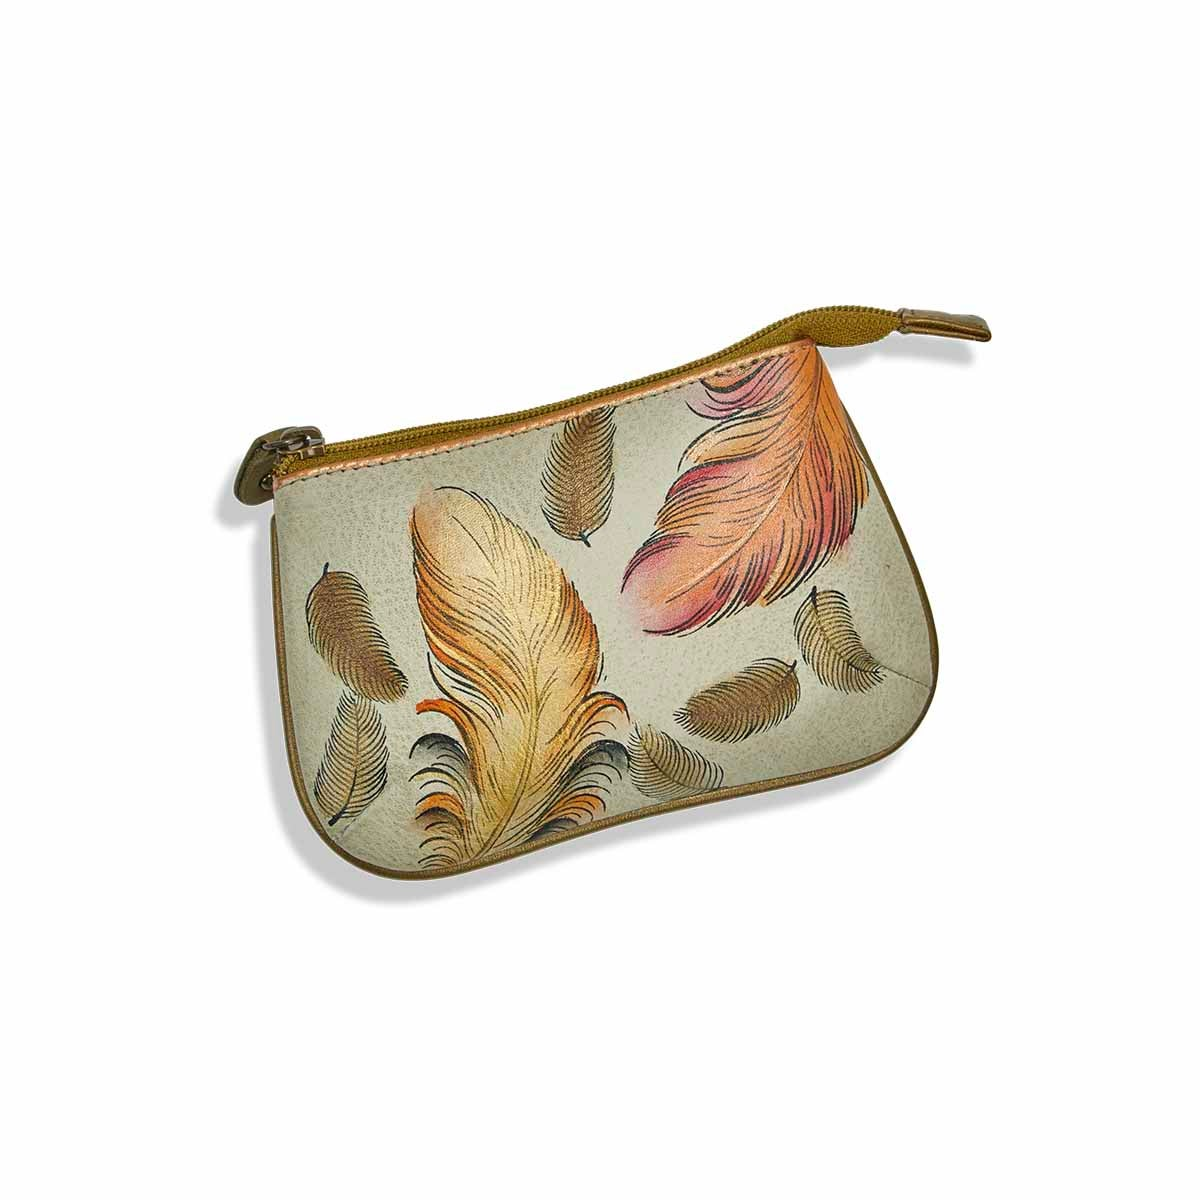 Painted lthr FloatingFeathers coin purse